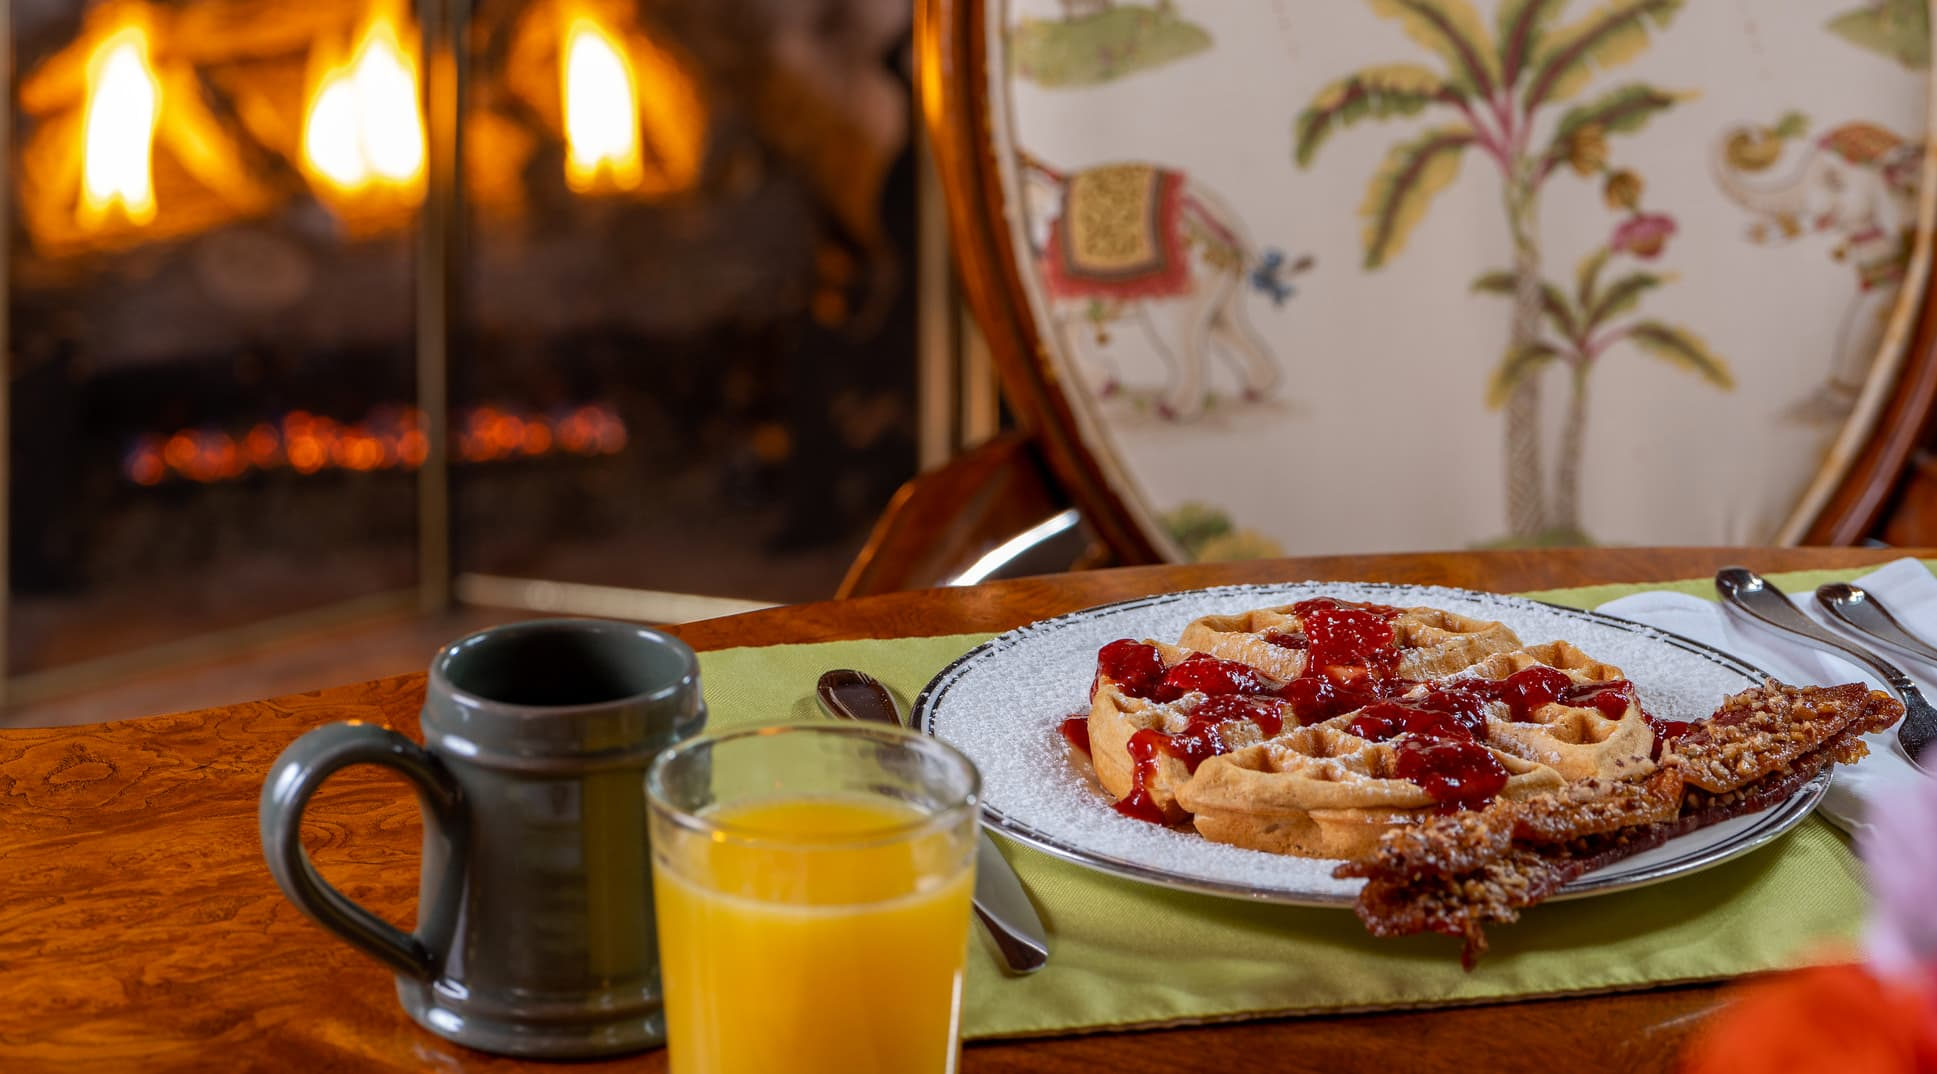 waffle by the fireplace at our B&B near Asheville